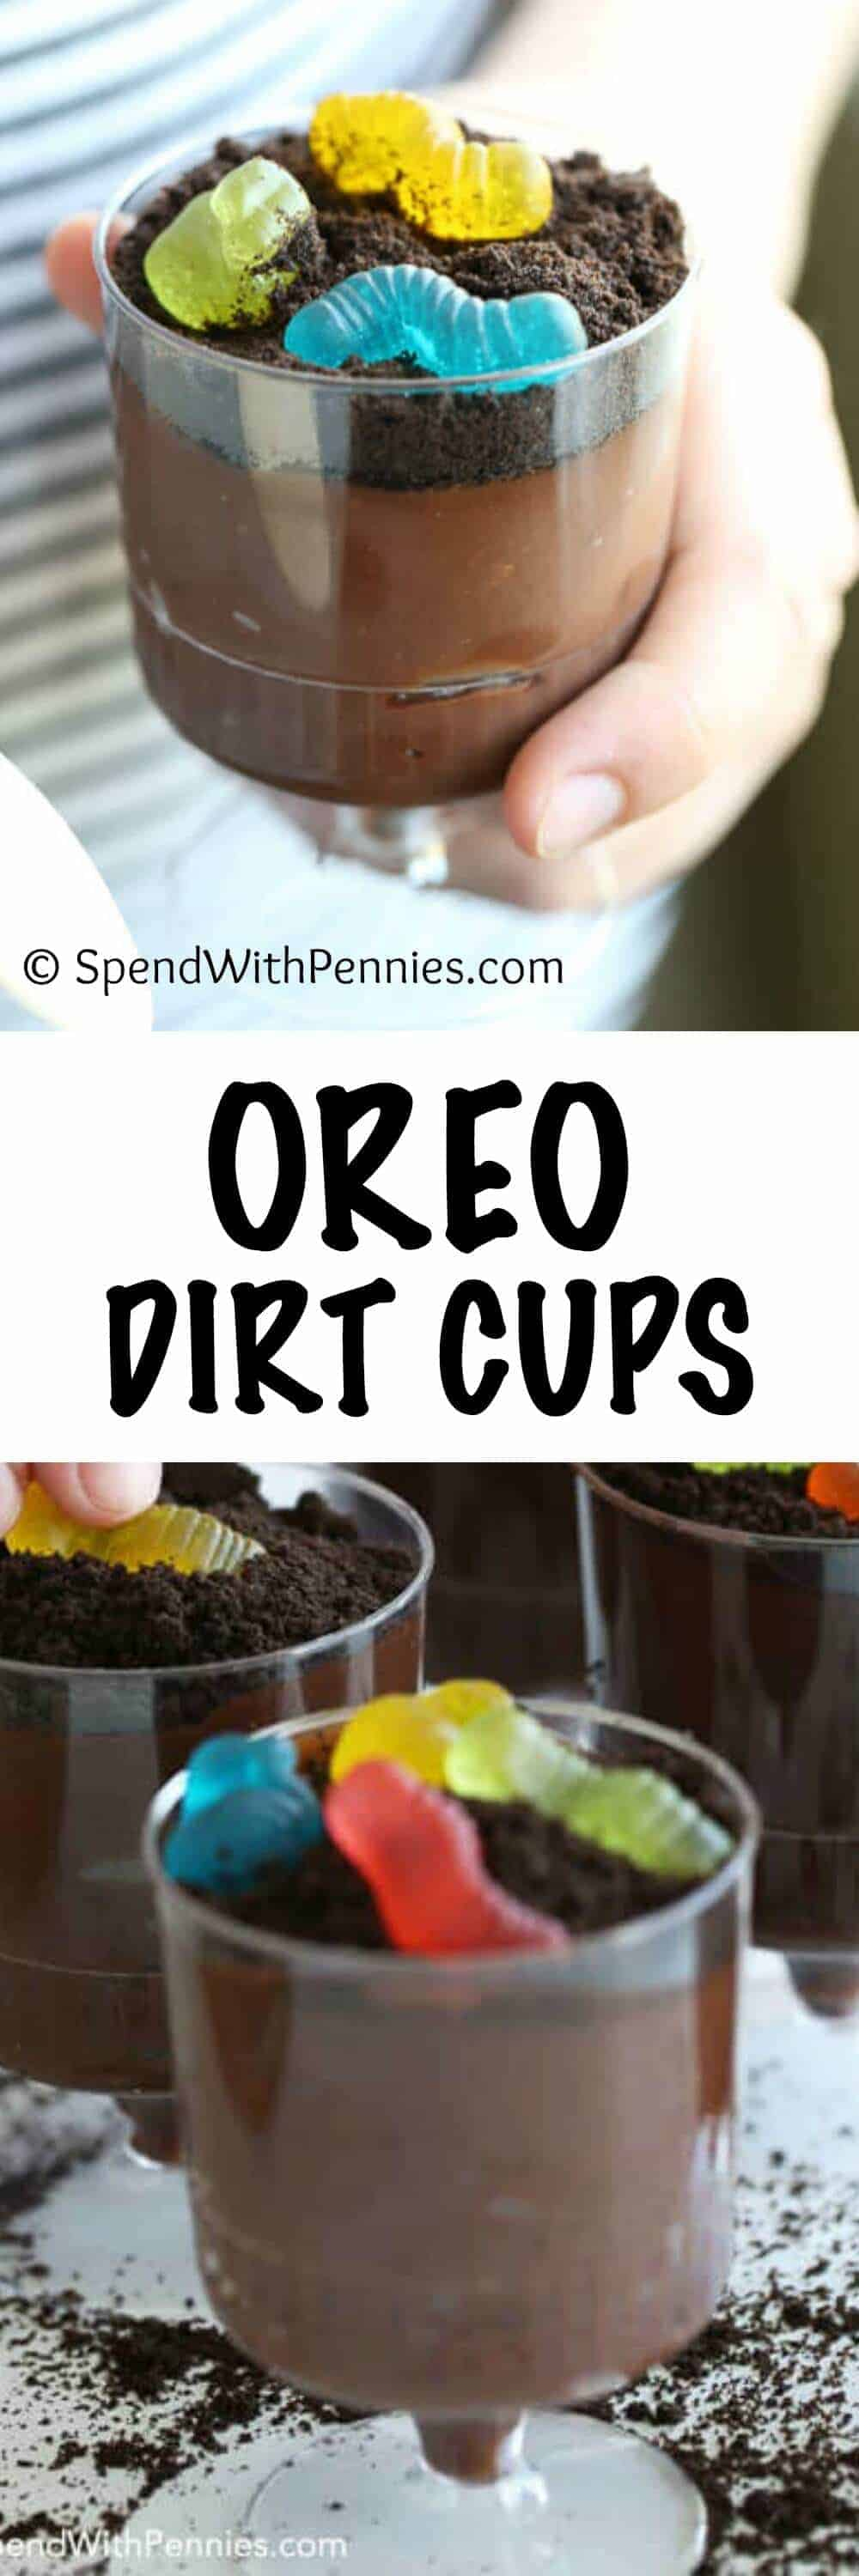 These adorable Jell-O Oreo Dirt Cups are a great make-ahead after school snack or the perfect surprise lunchbox treat!